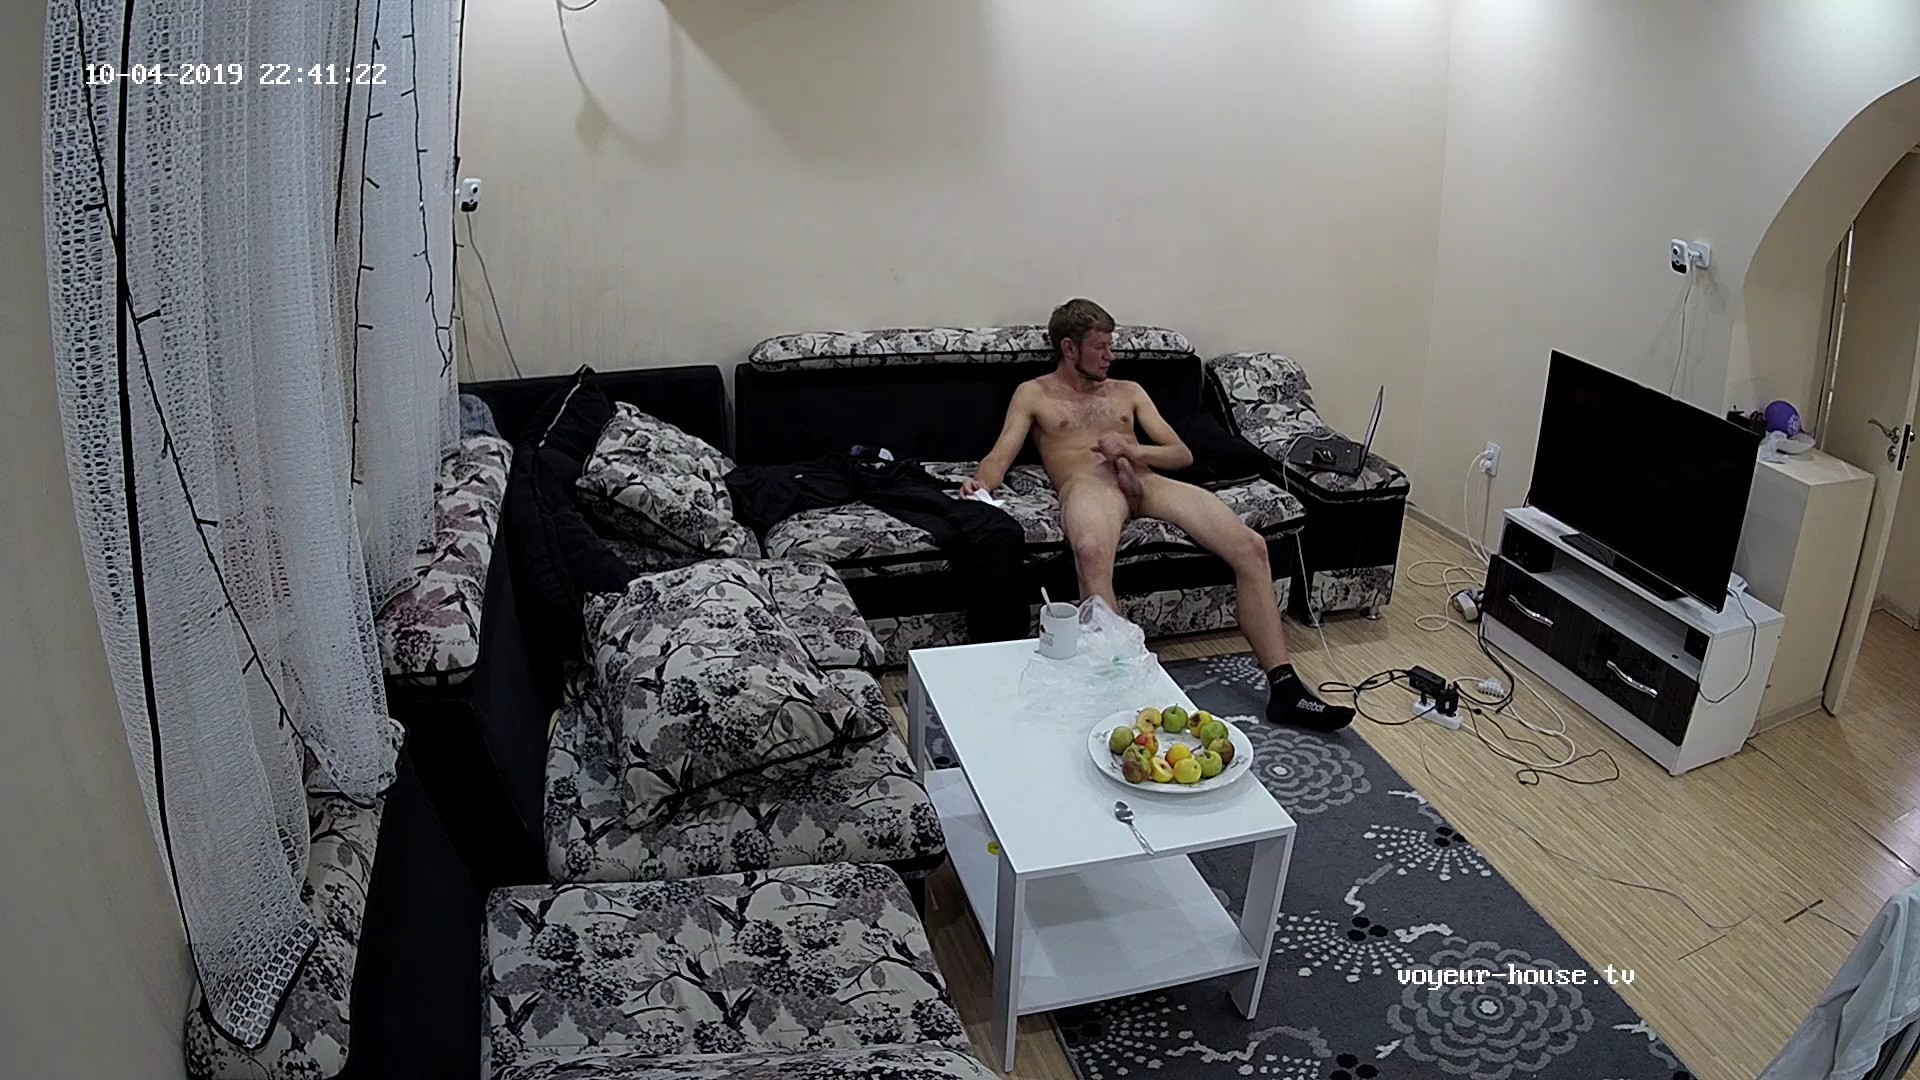 Archi Jerking Continues in Livingroom 4 Oct 2019